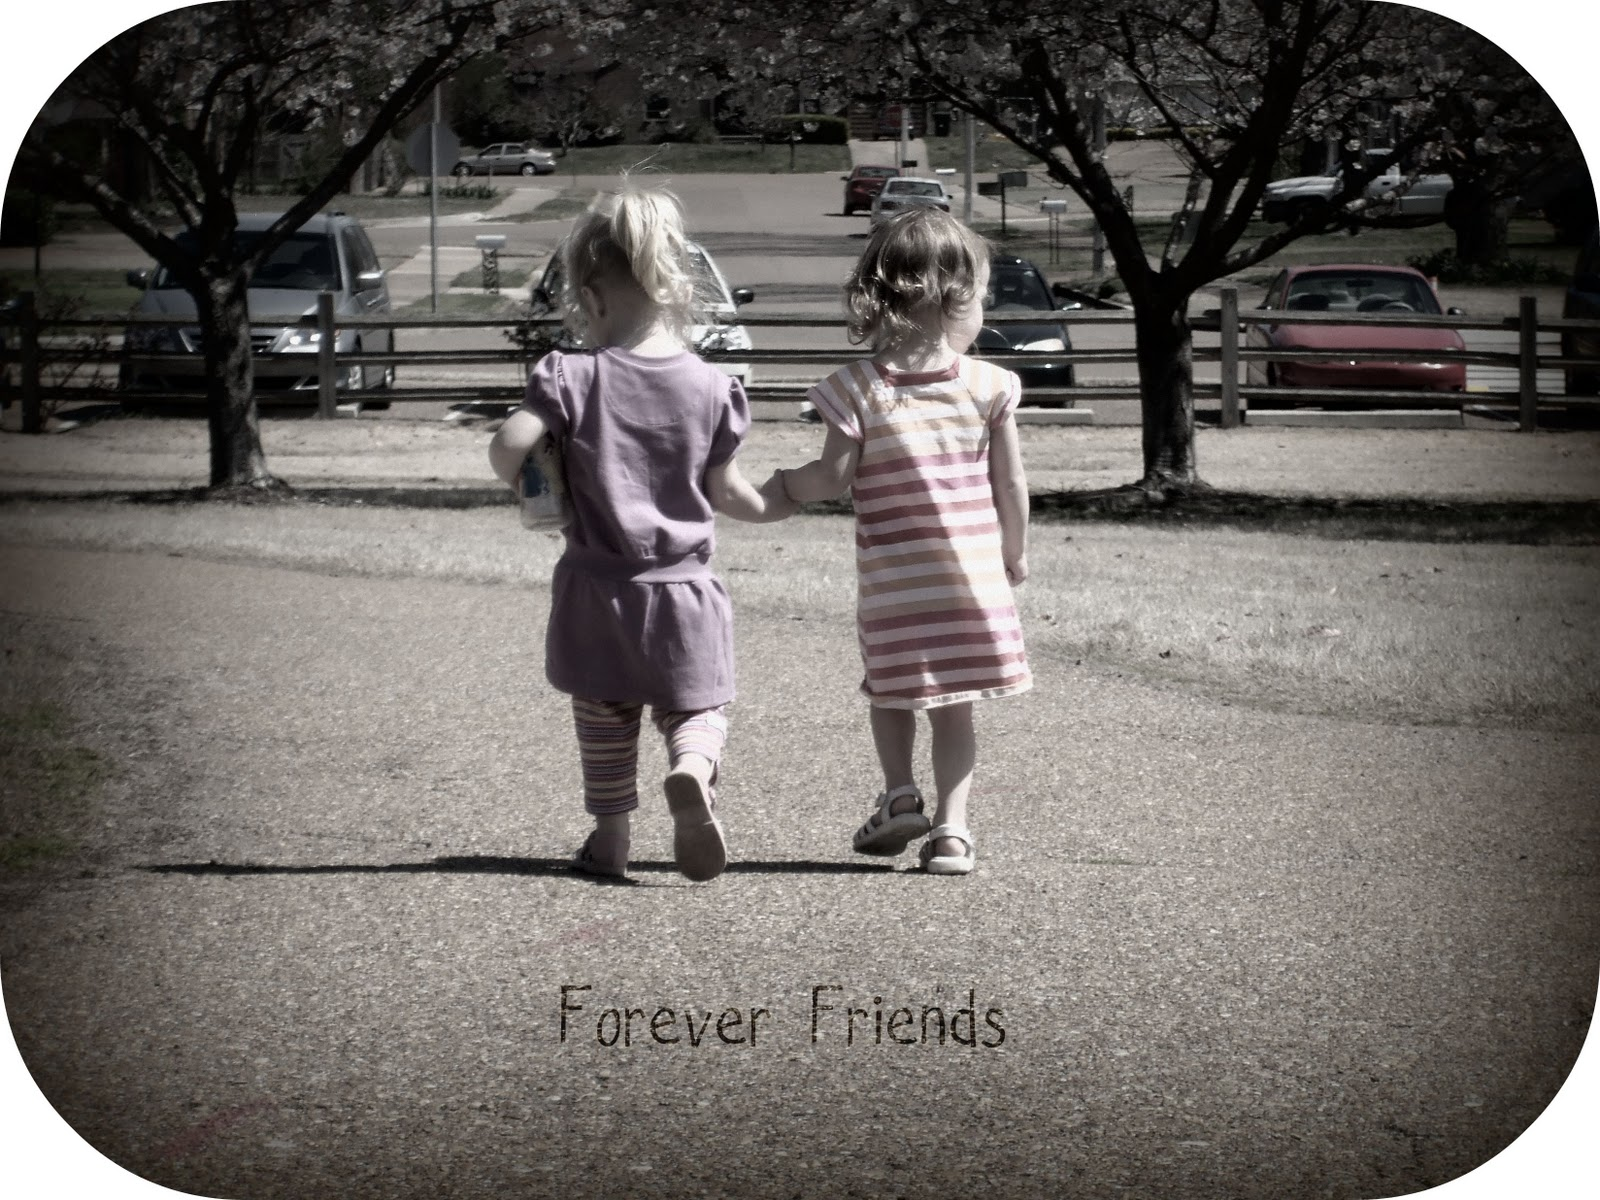 friends are forever essay